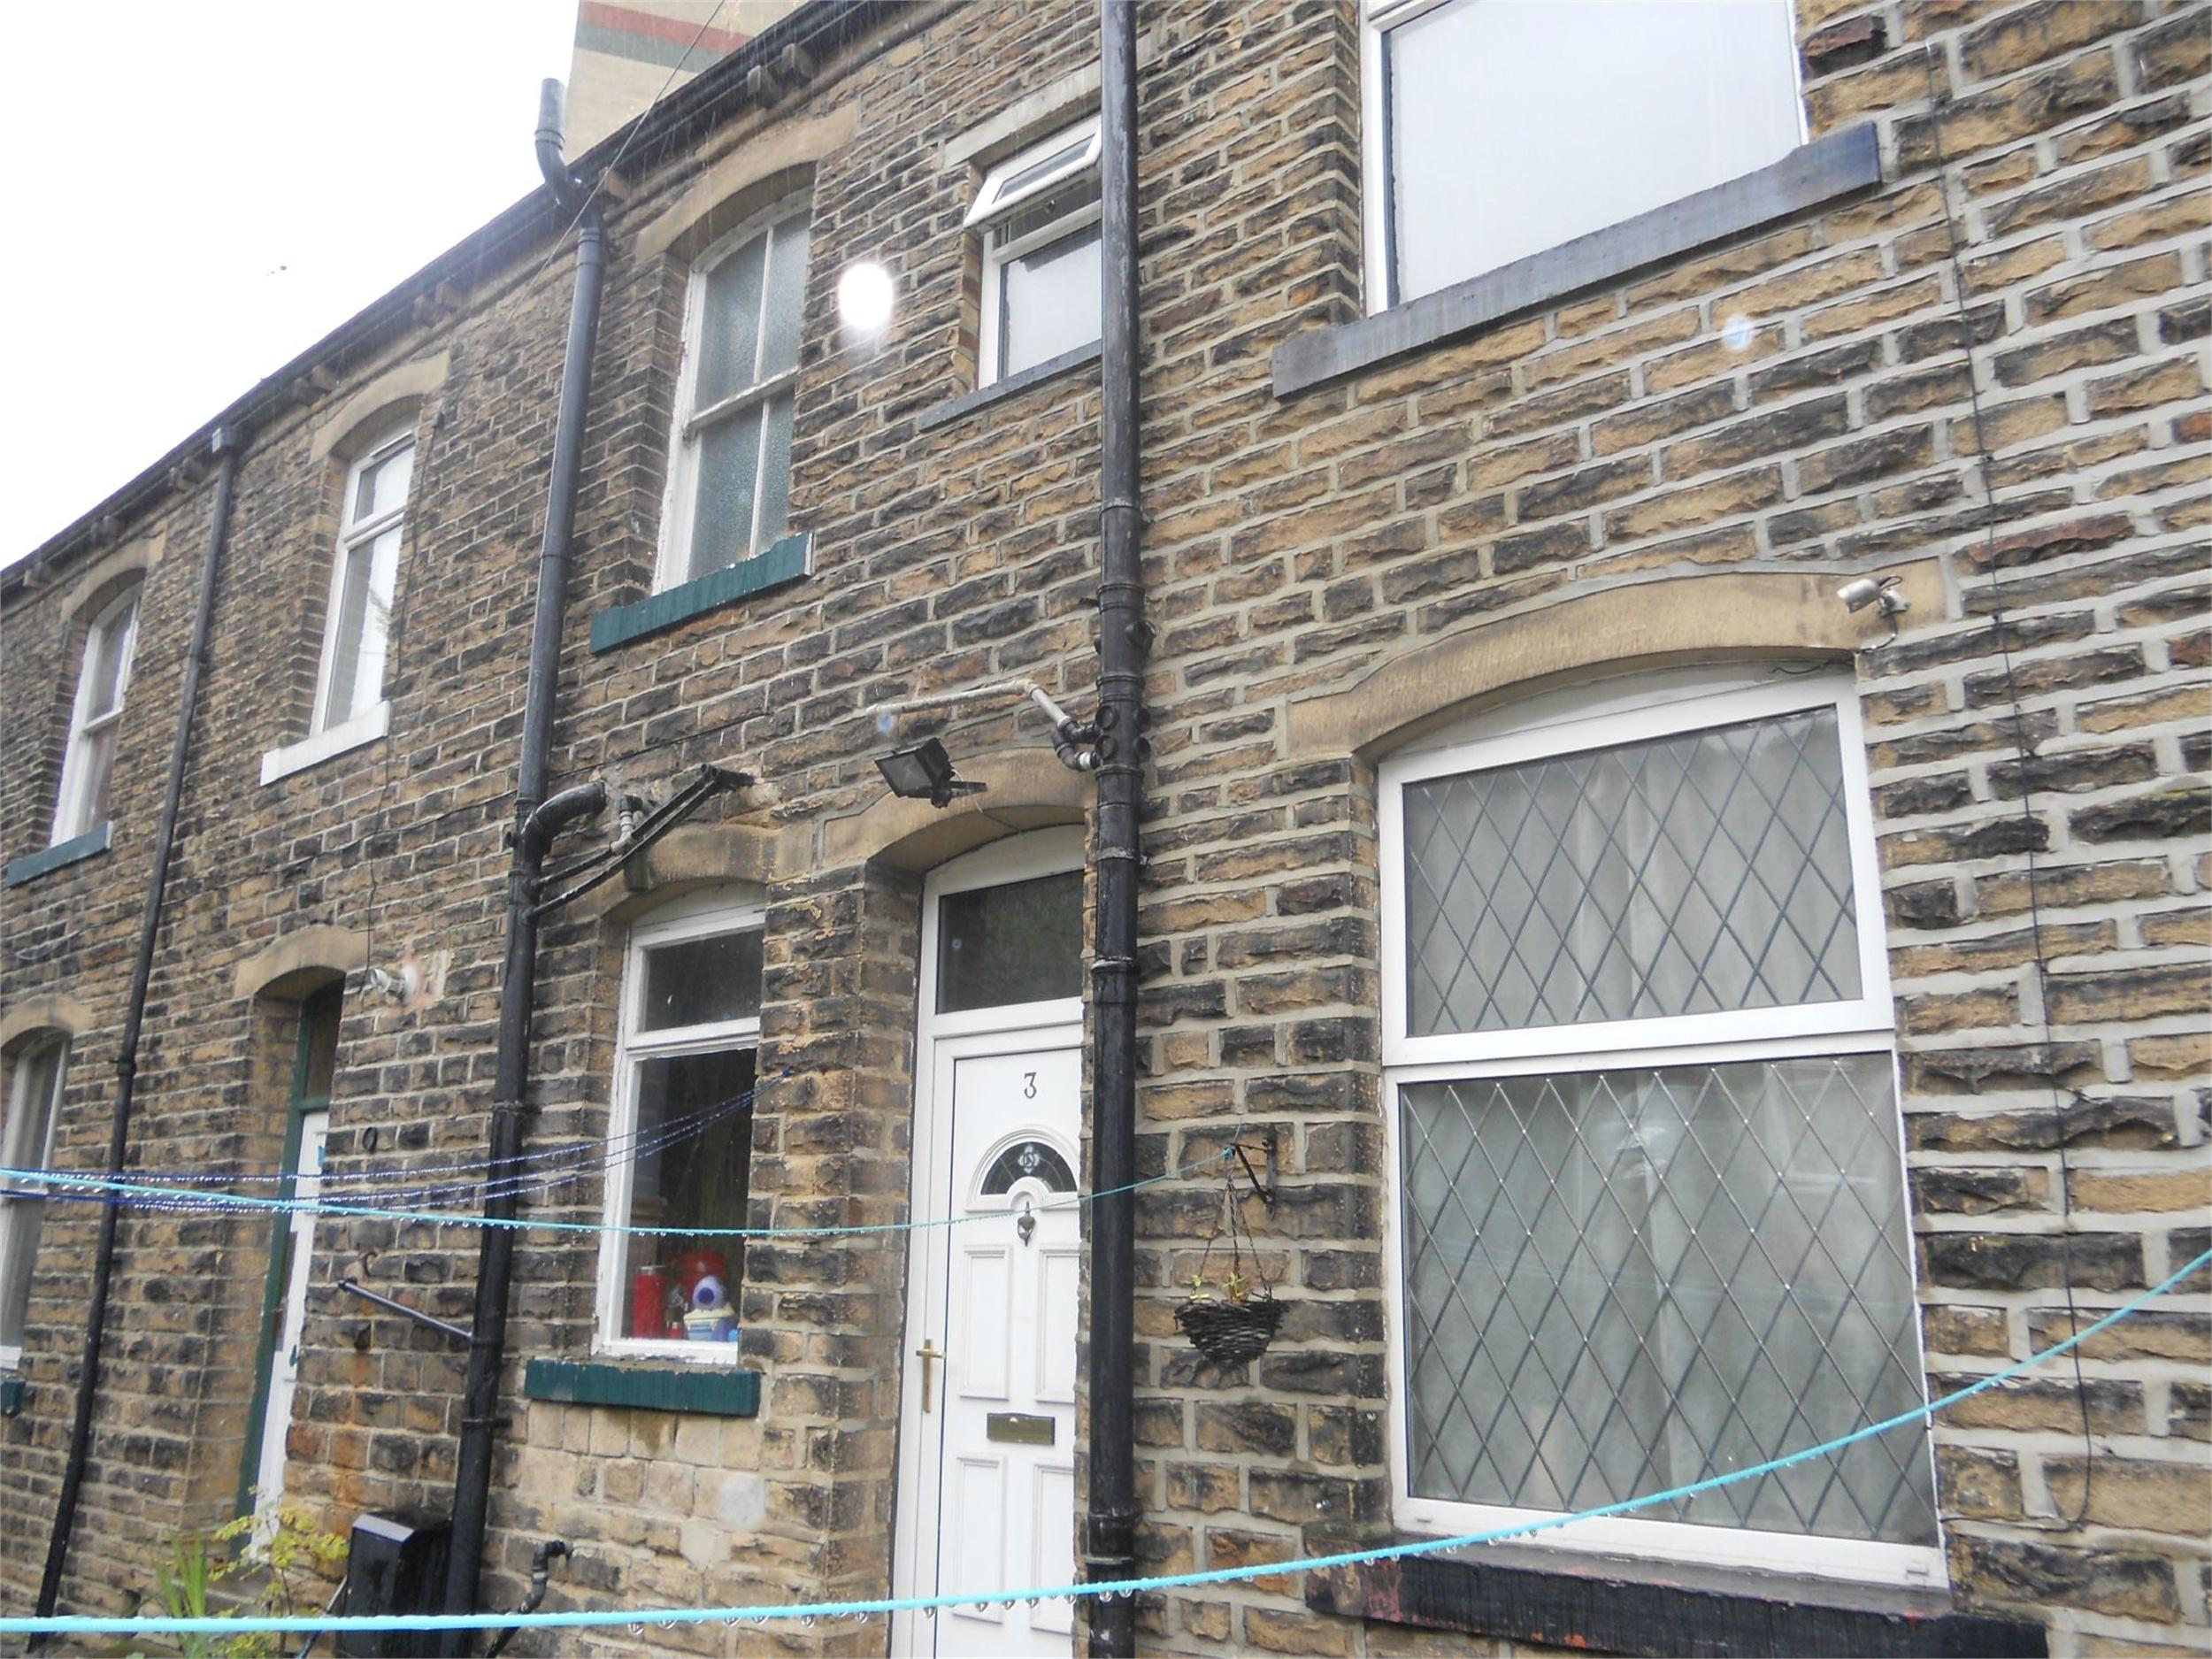 Yorkshire Terrace: Whitegates Keighley 1 Bedroom House For Sale In 3 Wood